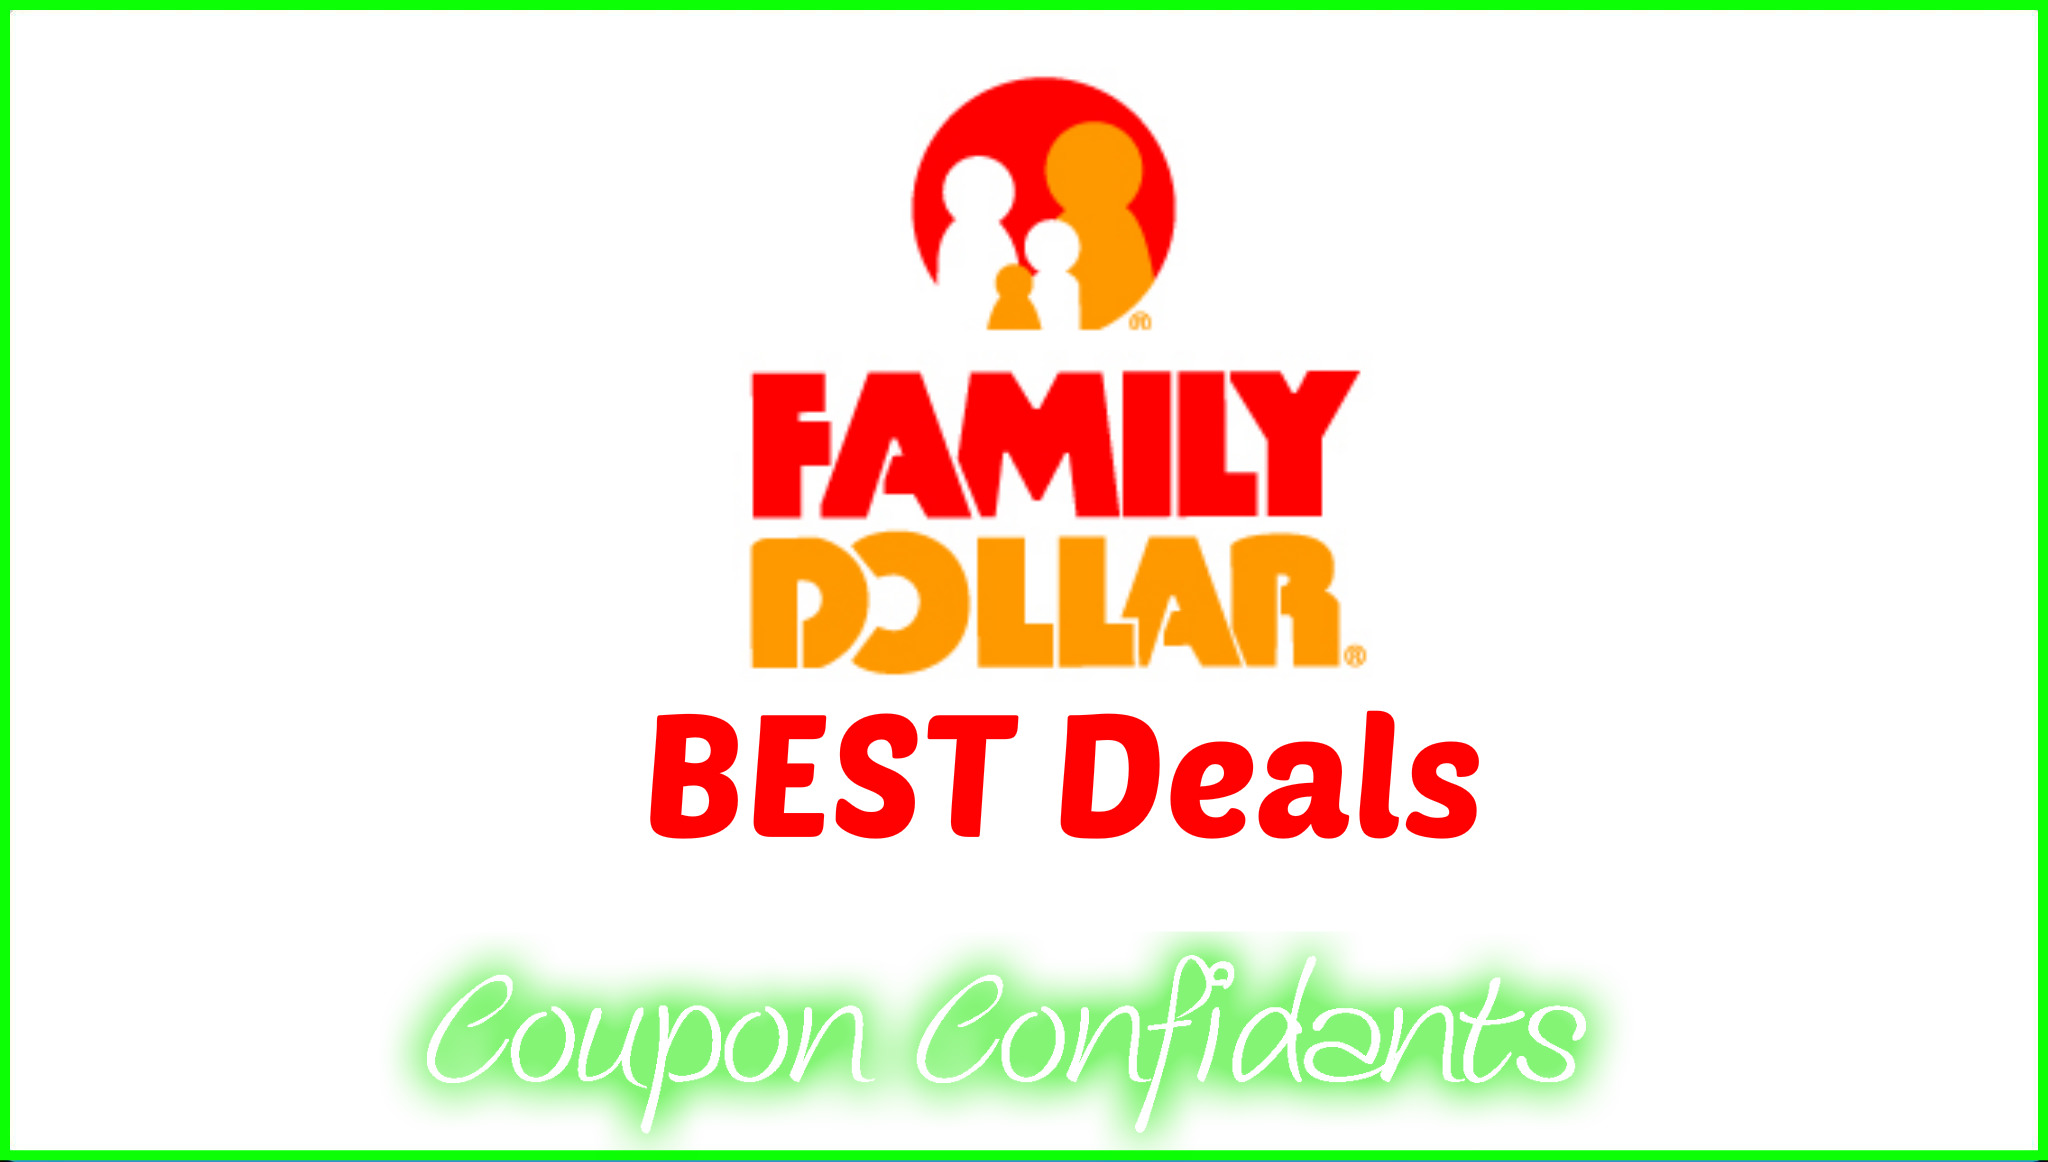 photo about Printable Coupons Silver Dollar City named Family members greenback coupon matchups june 2018 : Outside playhouse